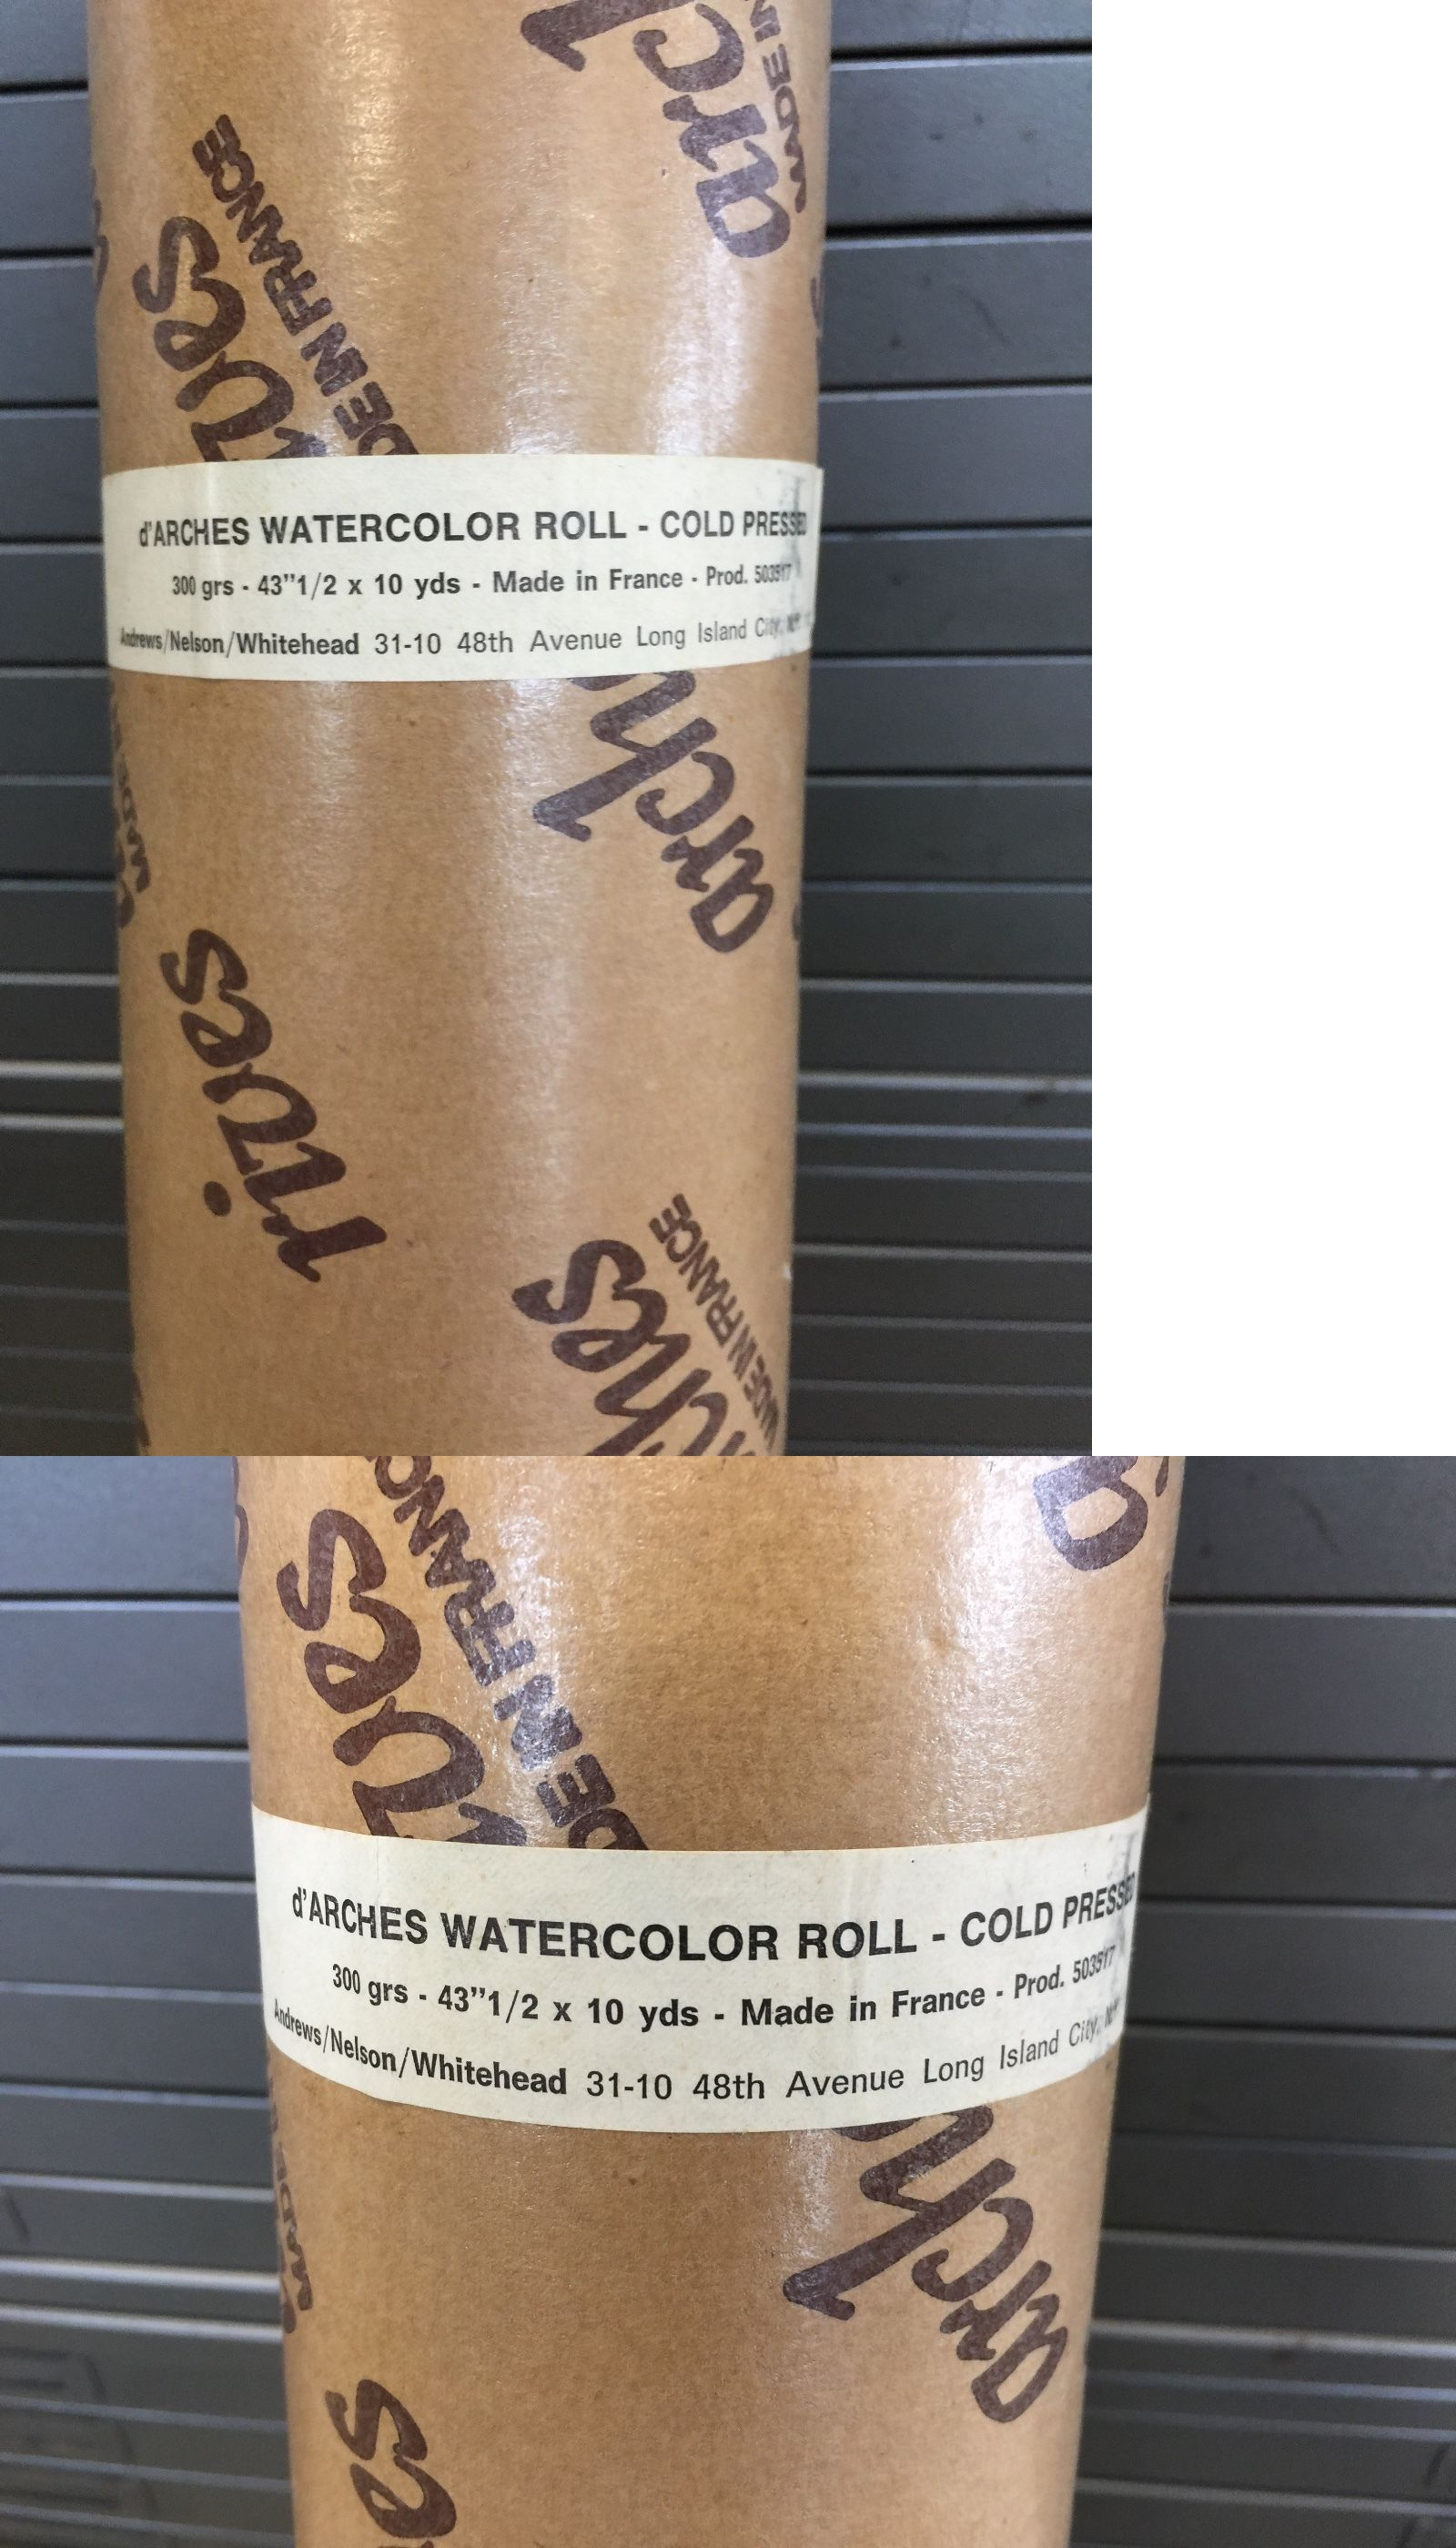 Art Paper 57208 D Arches Watercolor Roll Cold Press 300grs